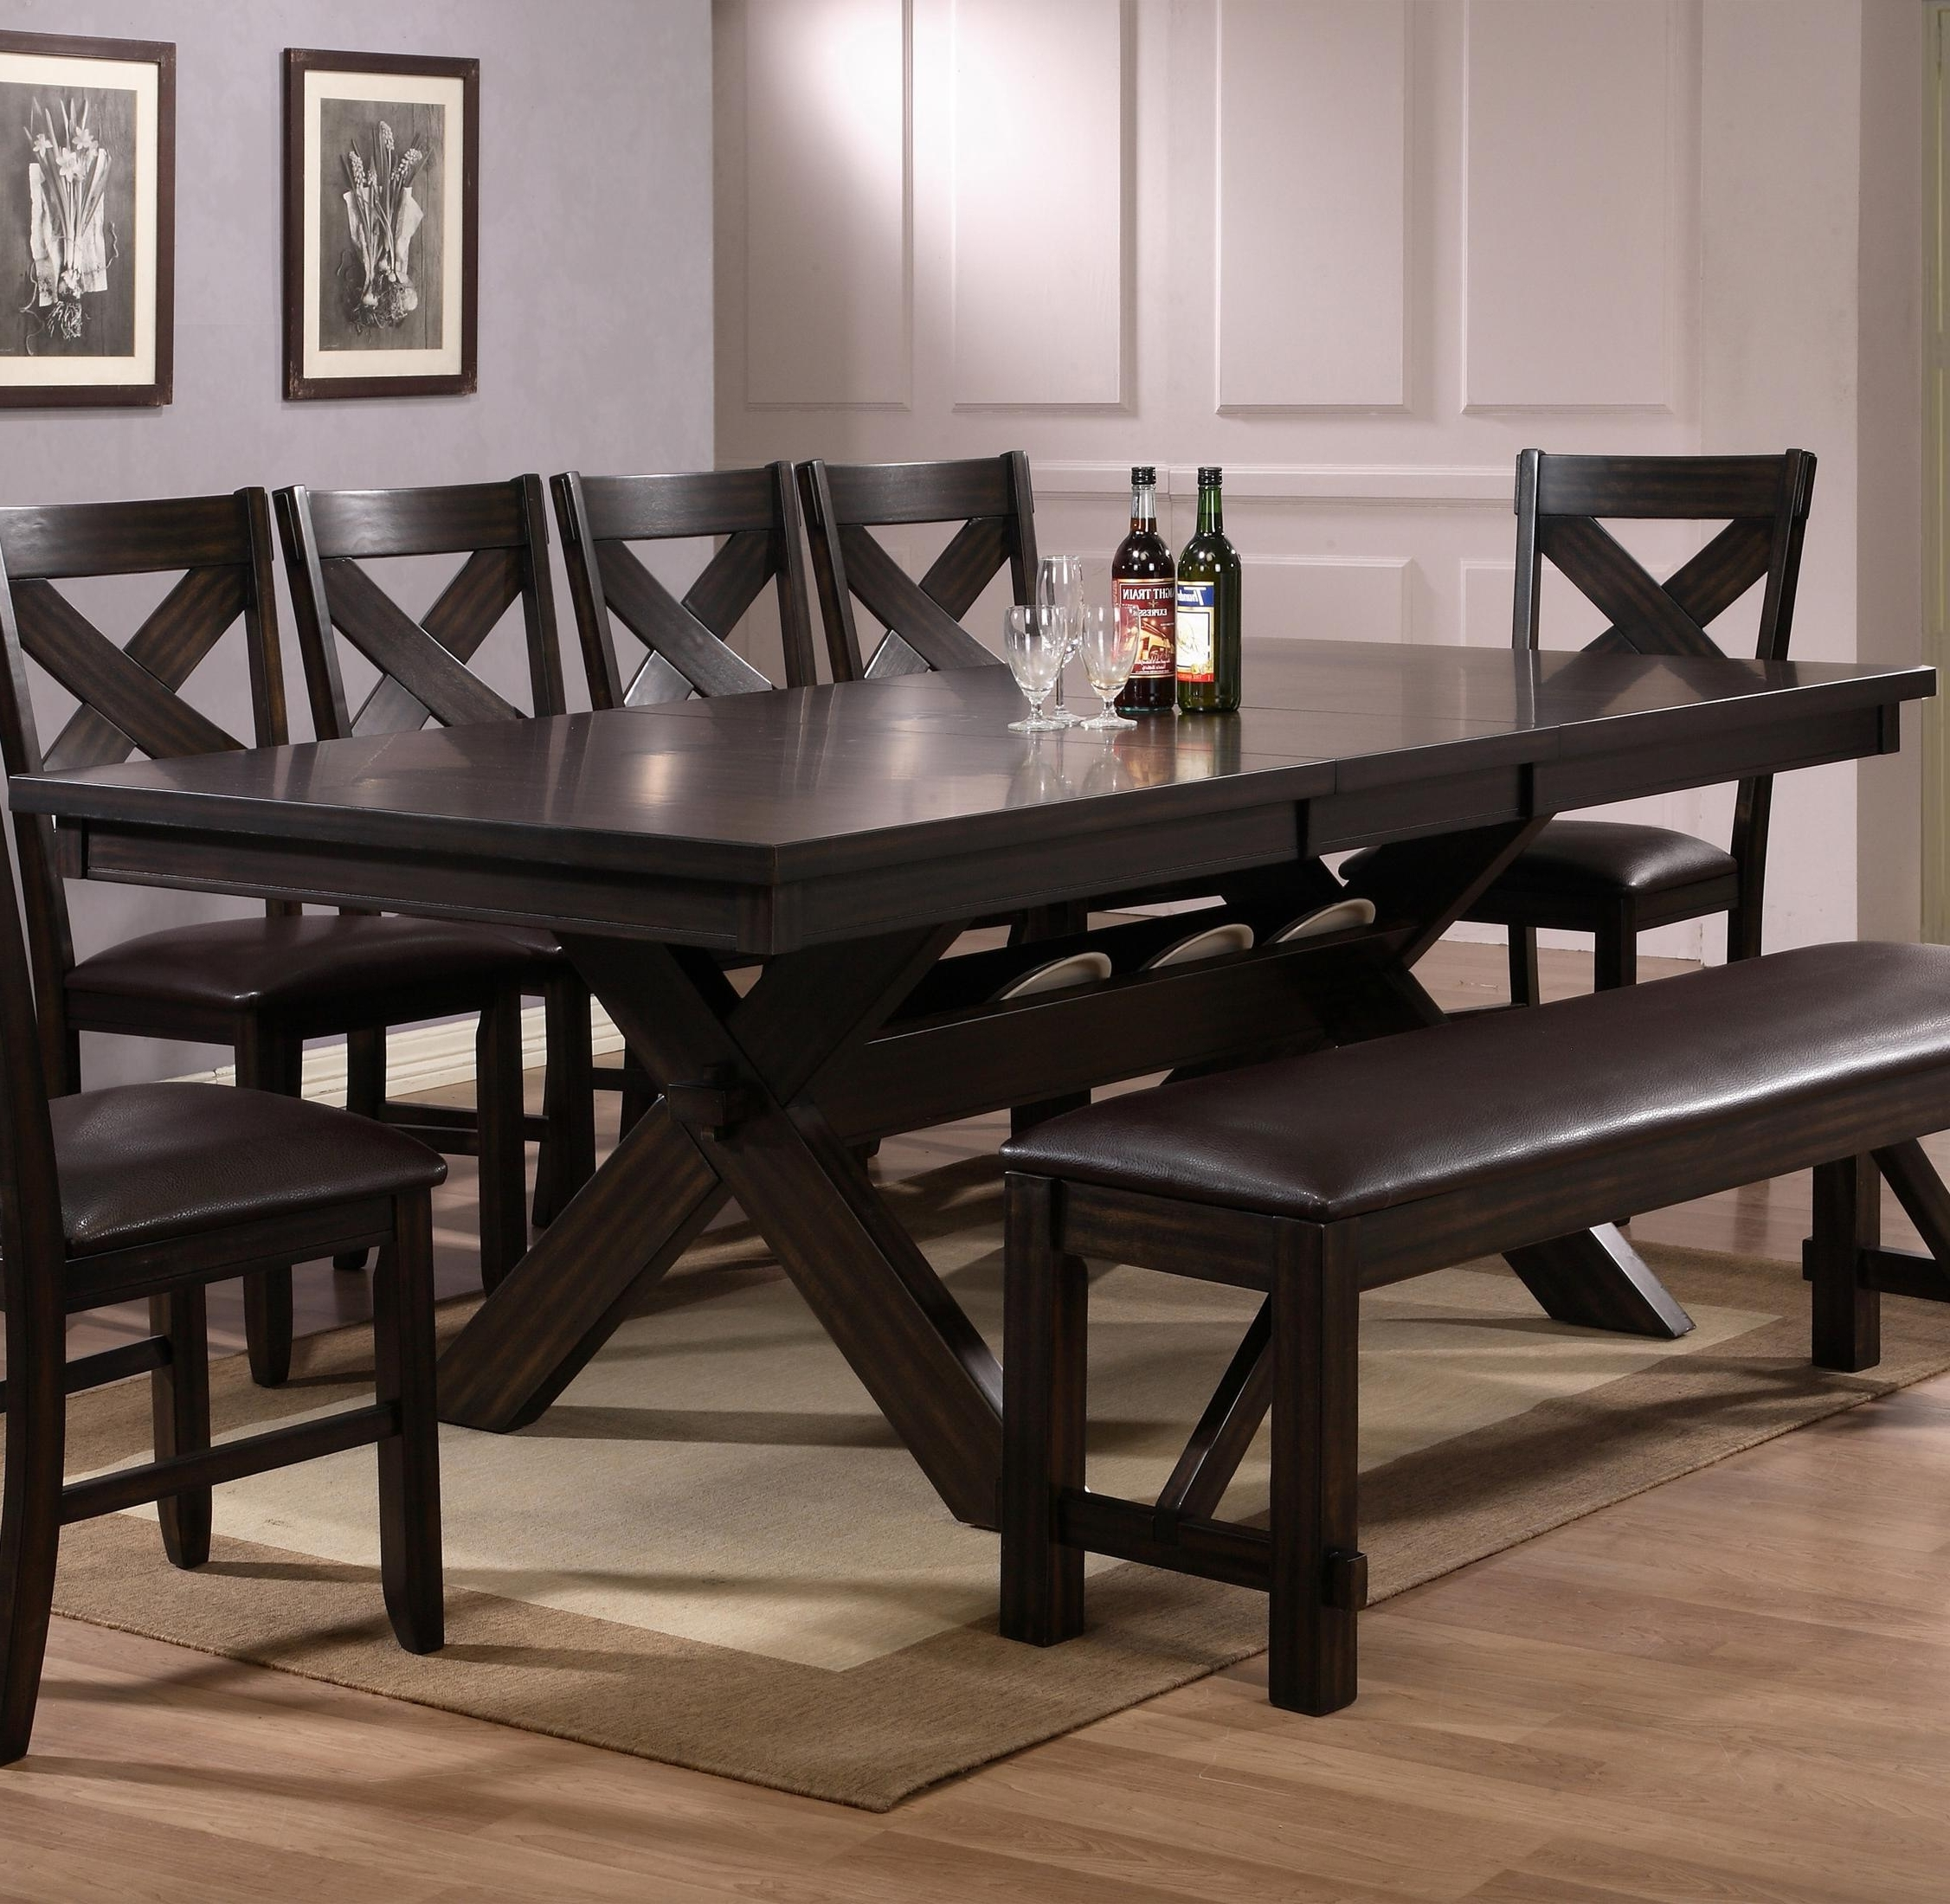 Dark Dining Tables For Preferred Belfort Essentials Havana Rectangular Dining Table With Storage (View 9 of 25)